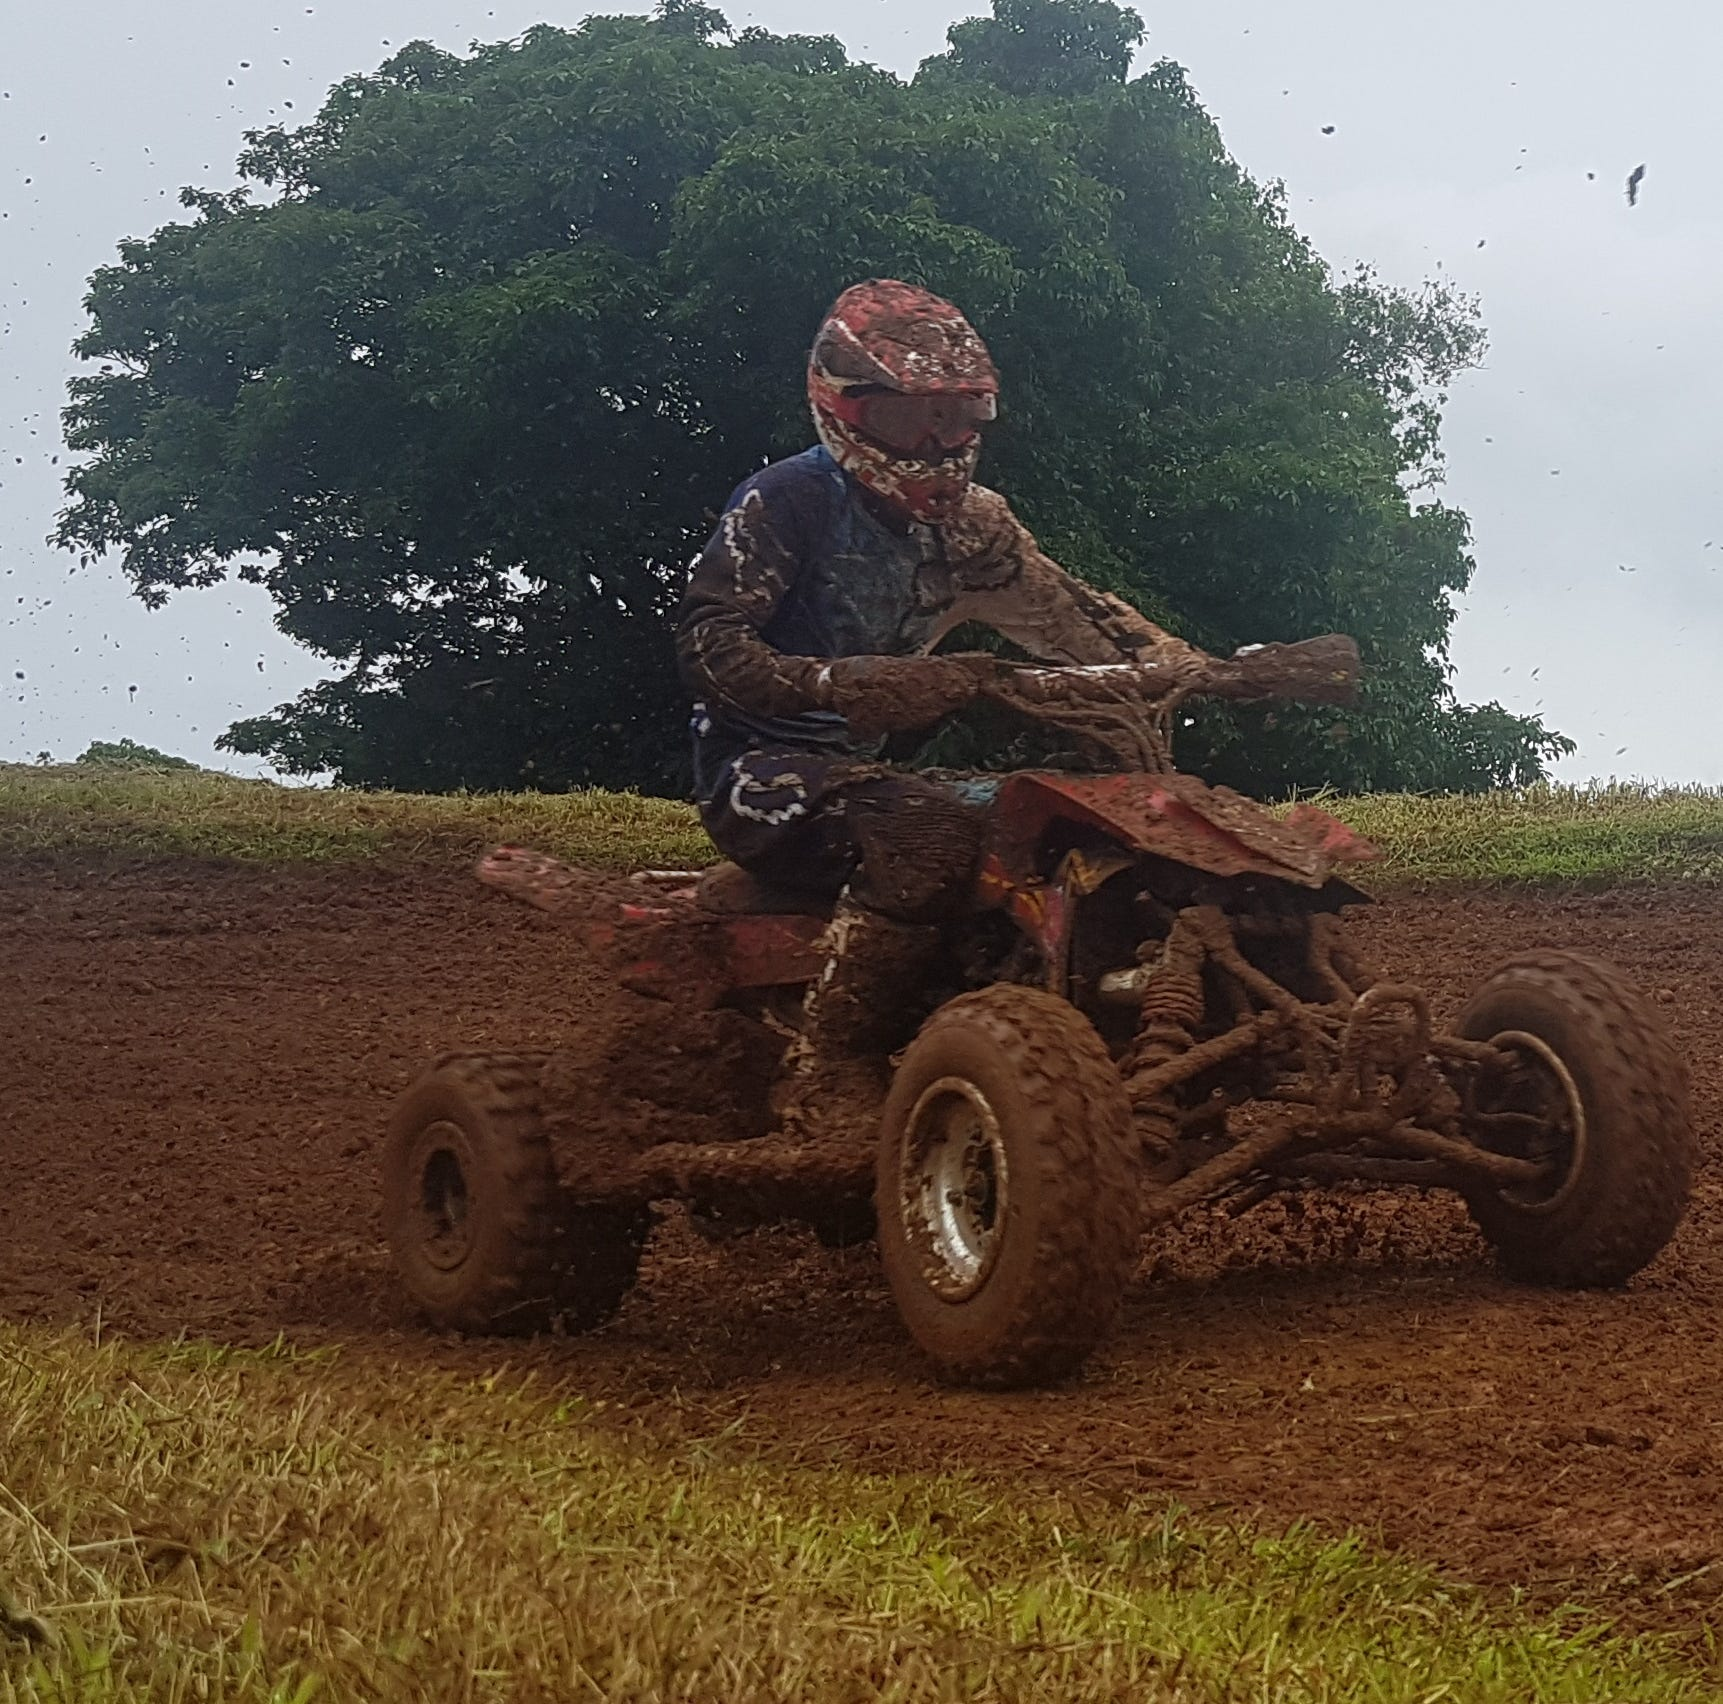 Racers take home wins in motocross championship